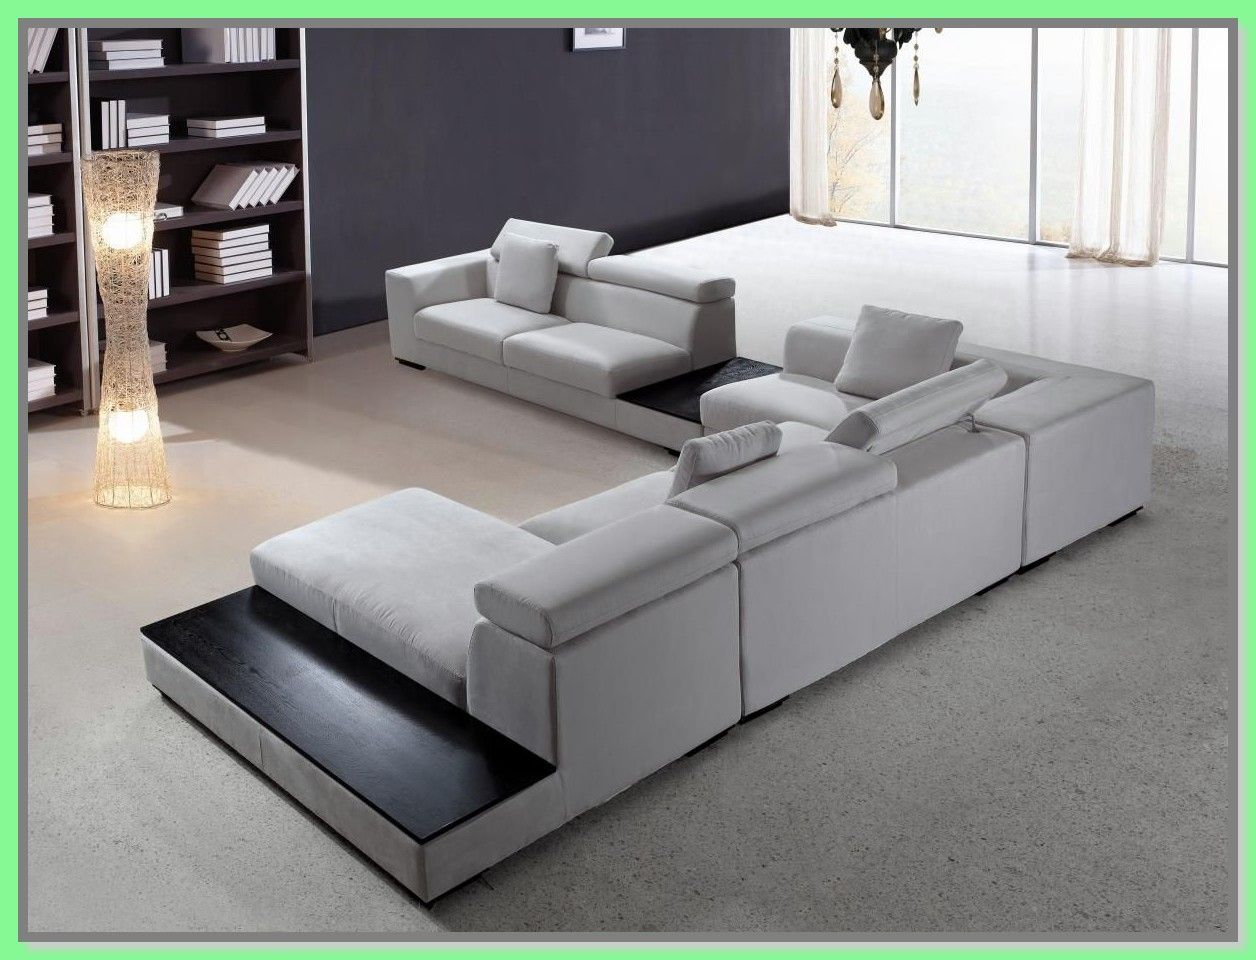 109 Reference Of Best Modular Sofa Reddit In 2020 Contemporary Sectional Sofa Modern Sofa Sectional Modular Sectional Sofa